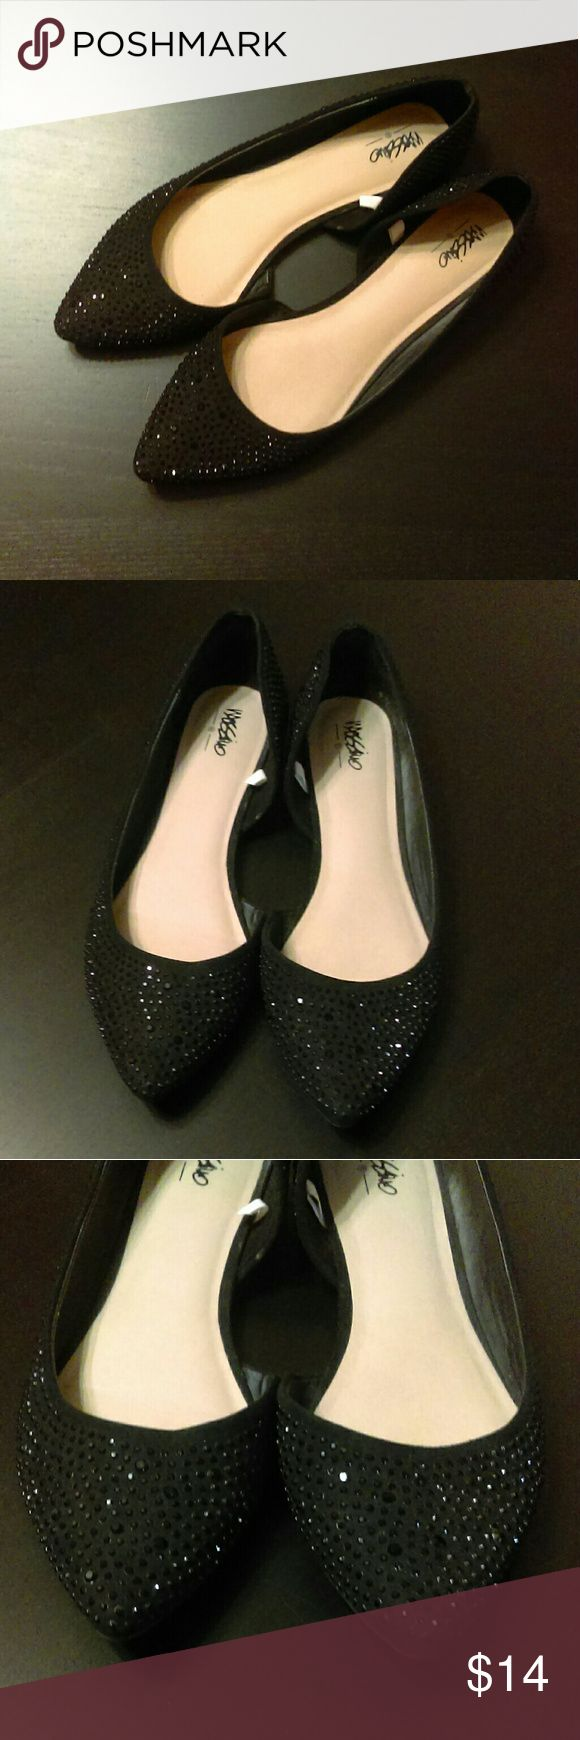 Massini Black Rhinestone Pointy Toe Flats Excellent condition black flats with black rhinestones covering entire upper. Pointy toes, like-new condition. Massini Shoes Flats & Loafers